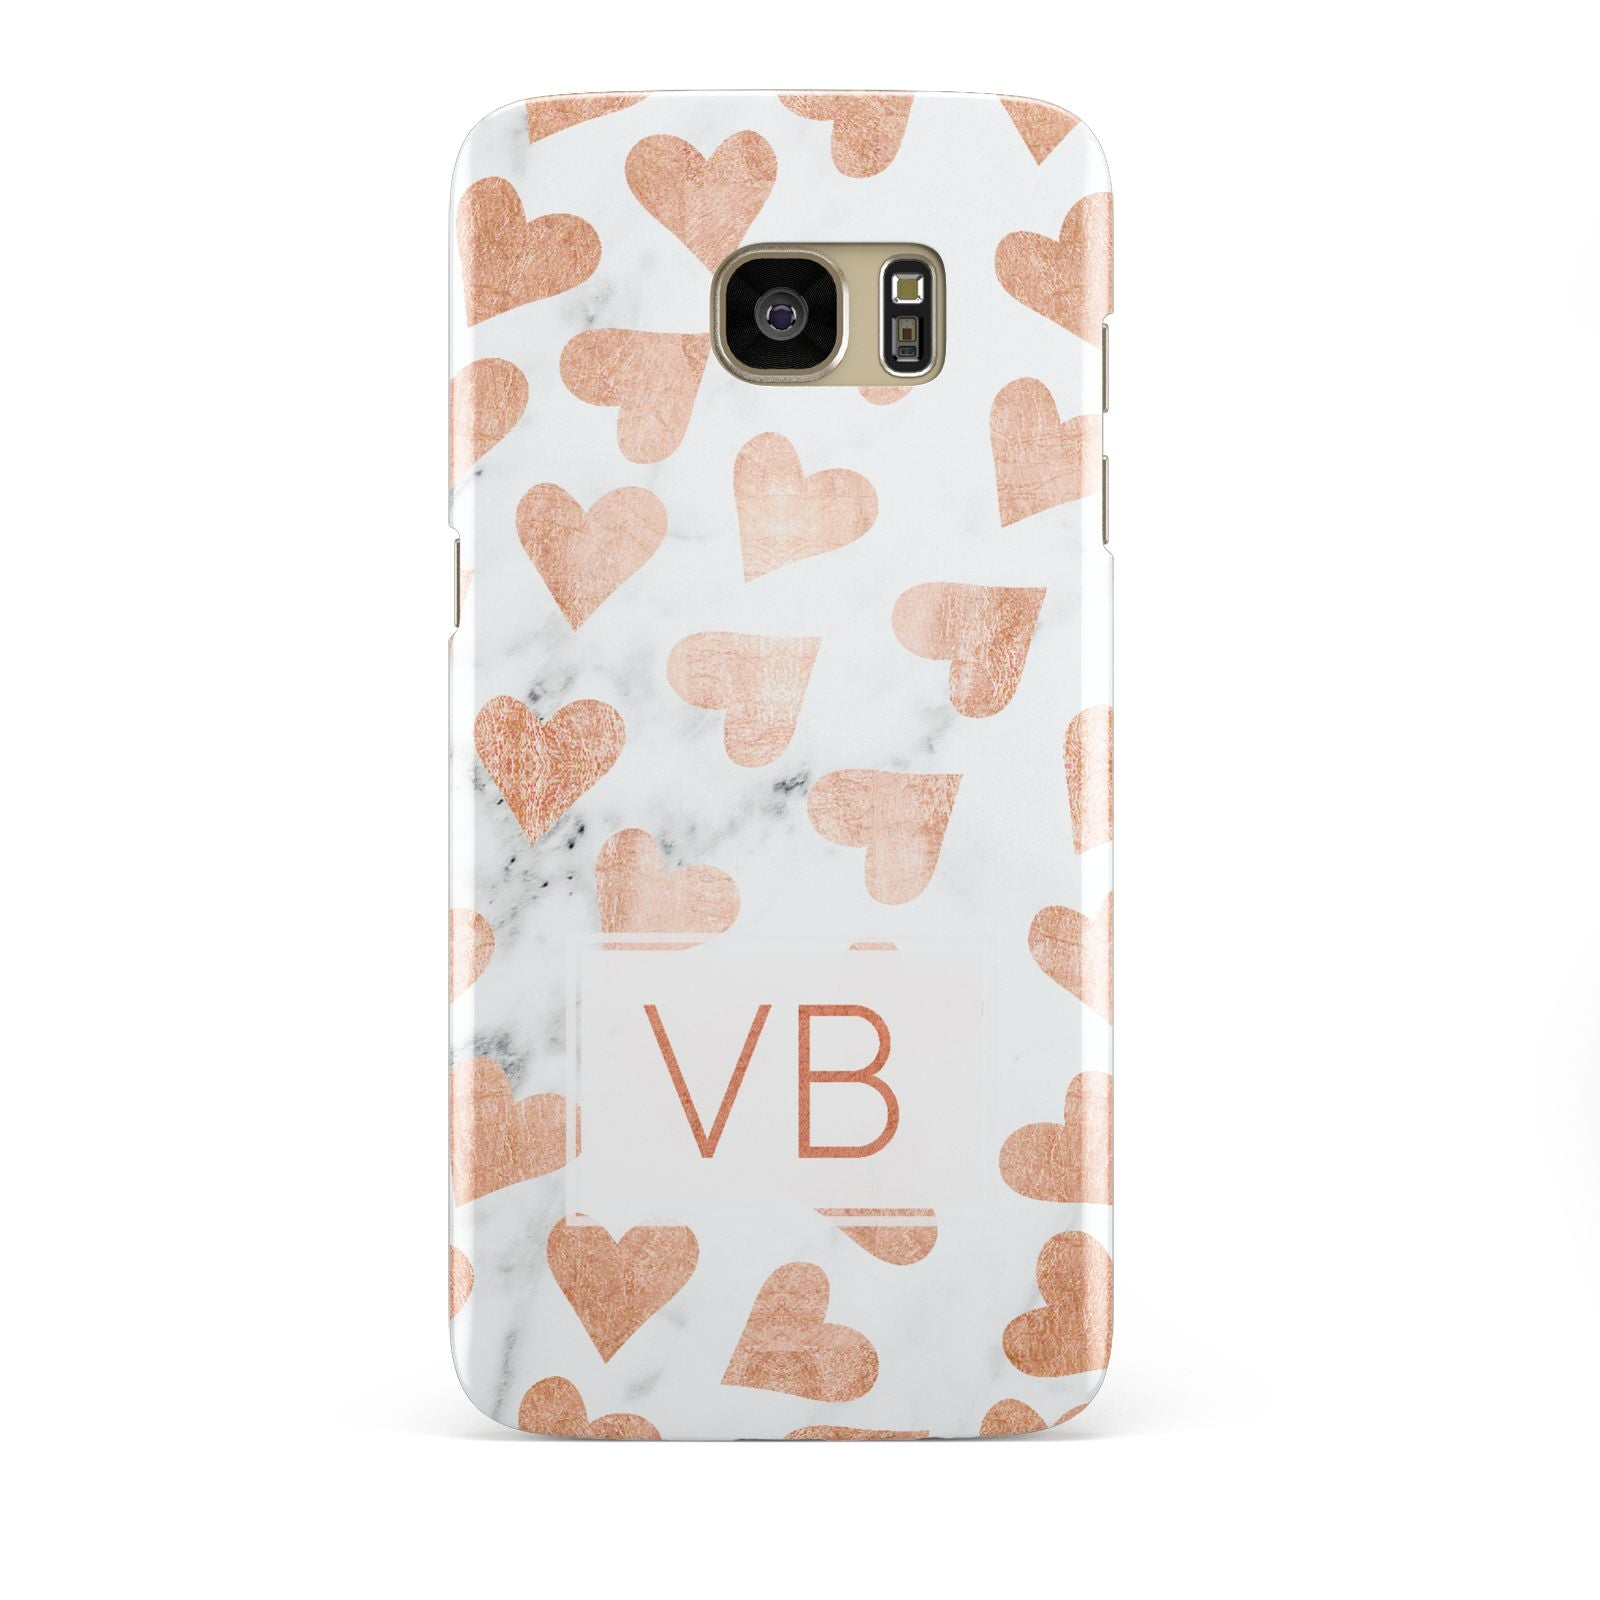 Personalised Heart Initialled Marble Samsung Galaxy S7 Edge Case